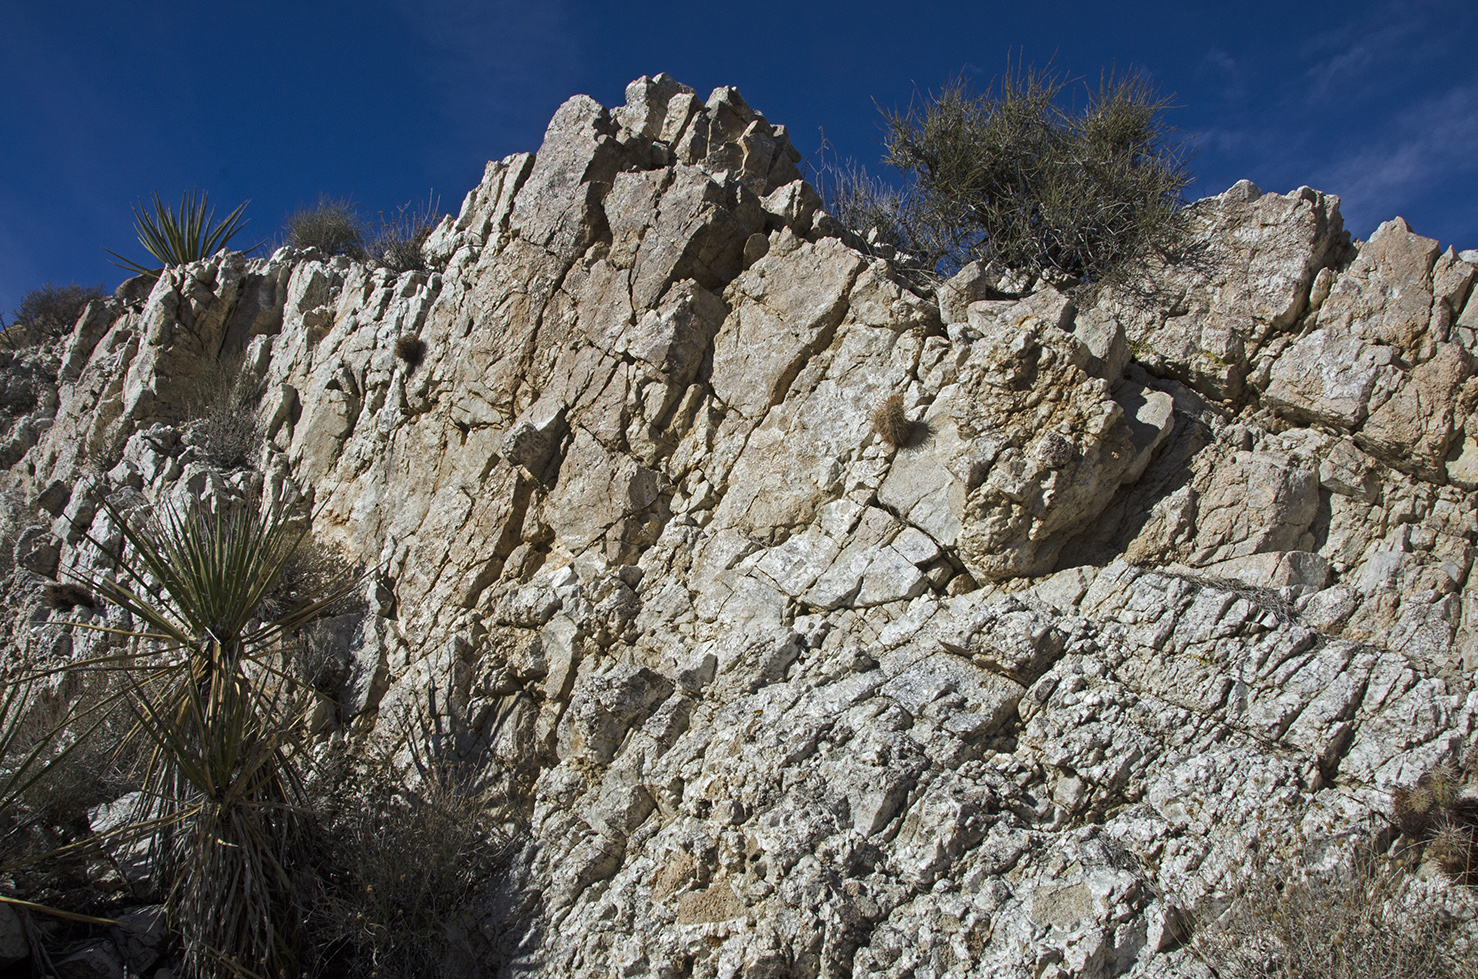 The picture doesn't really show how big this outcropping of white quartz is, but this wall must have been at least twenty feet tall. It continues on the other side of the wash for a long distance.